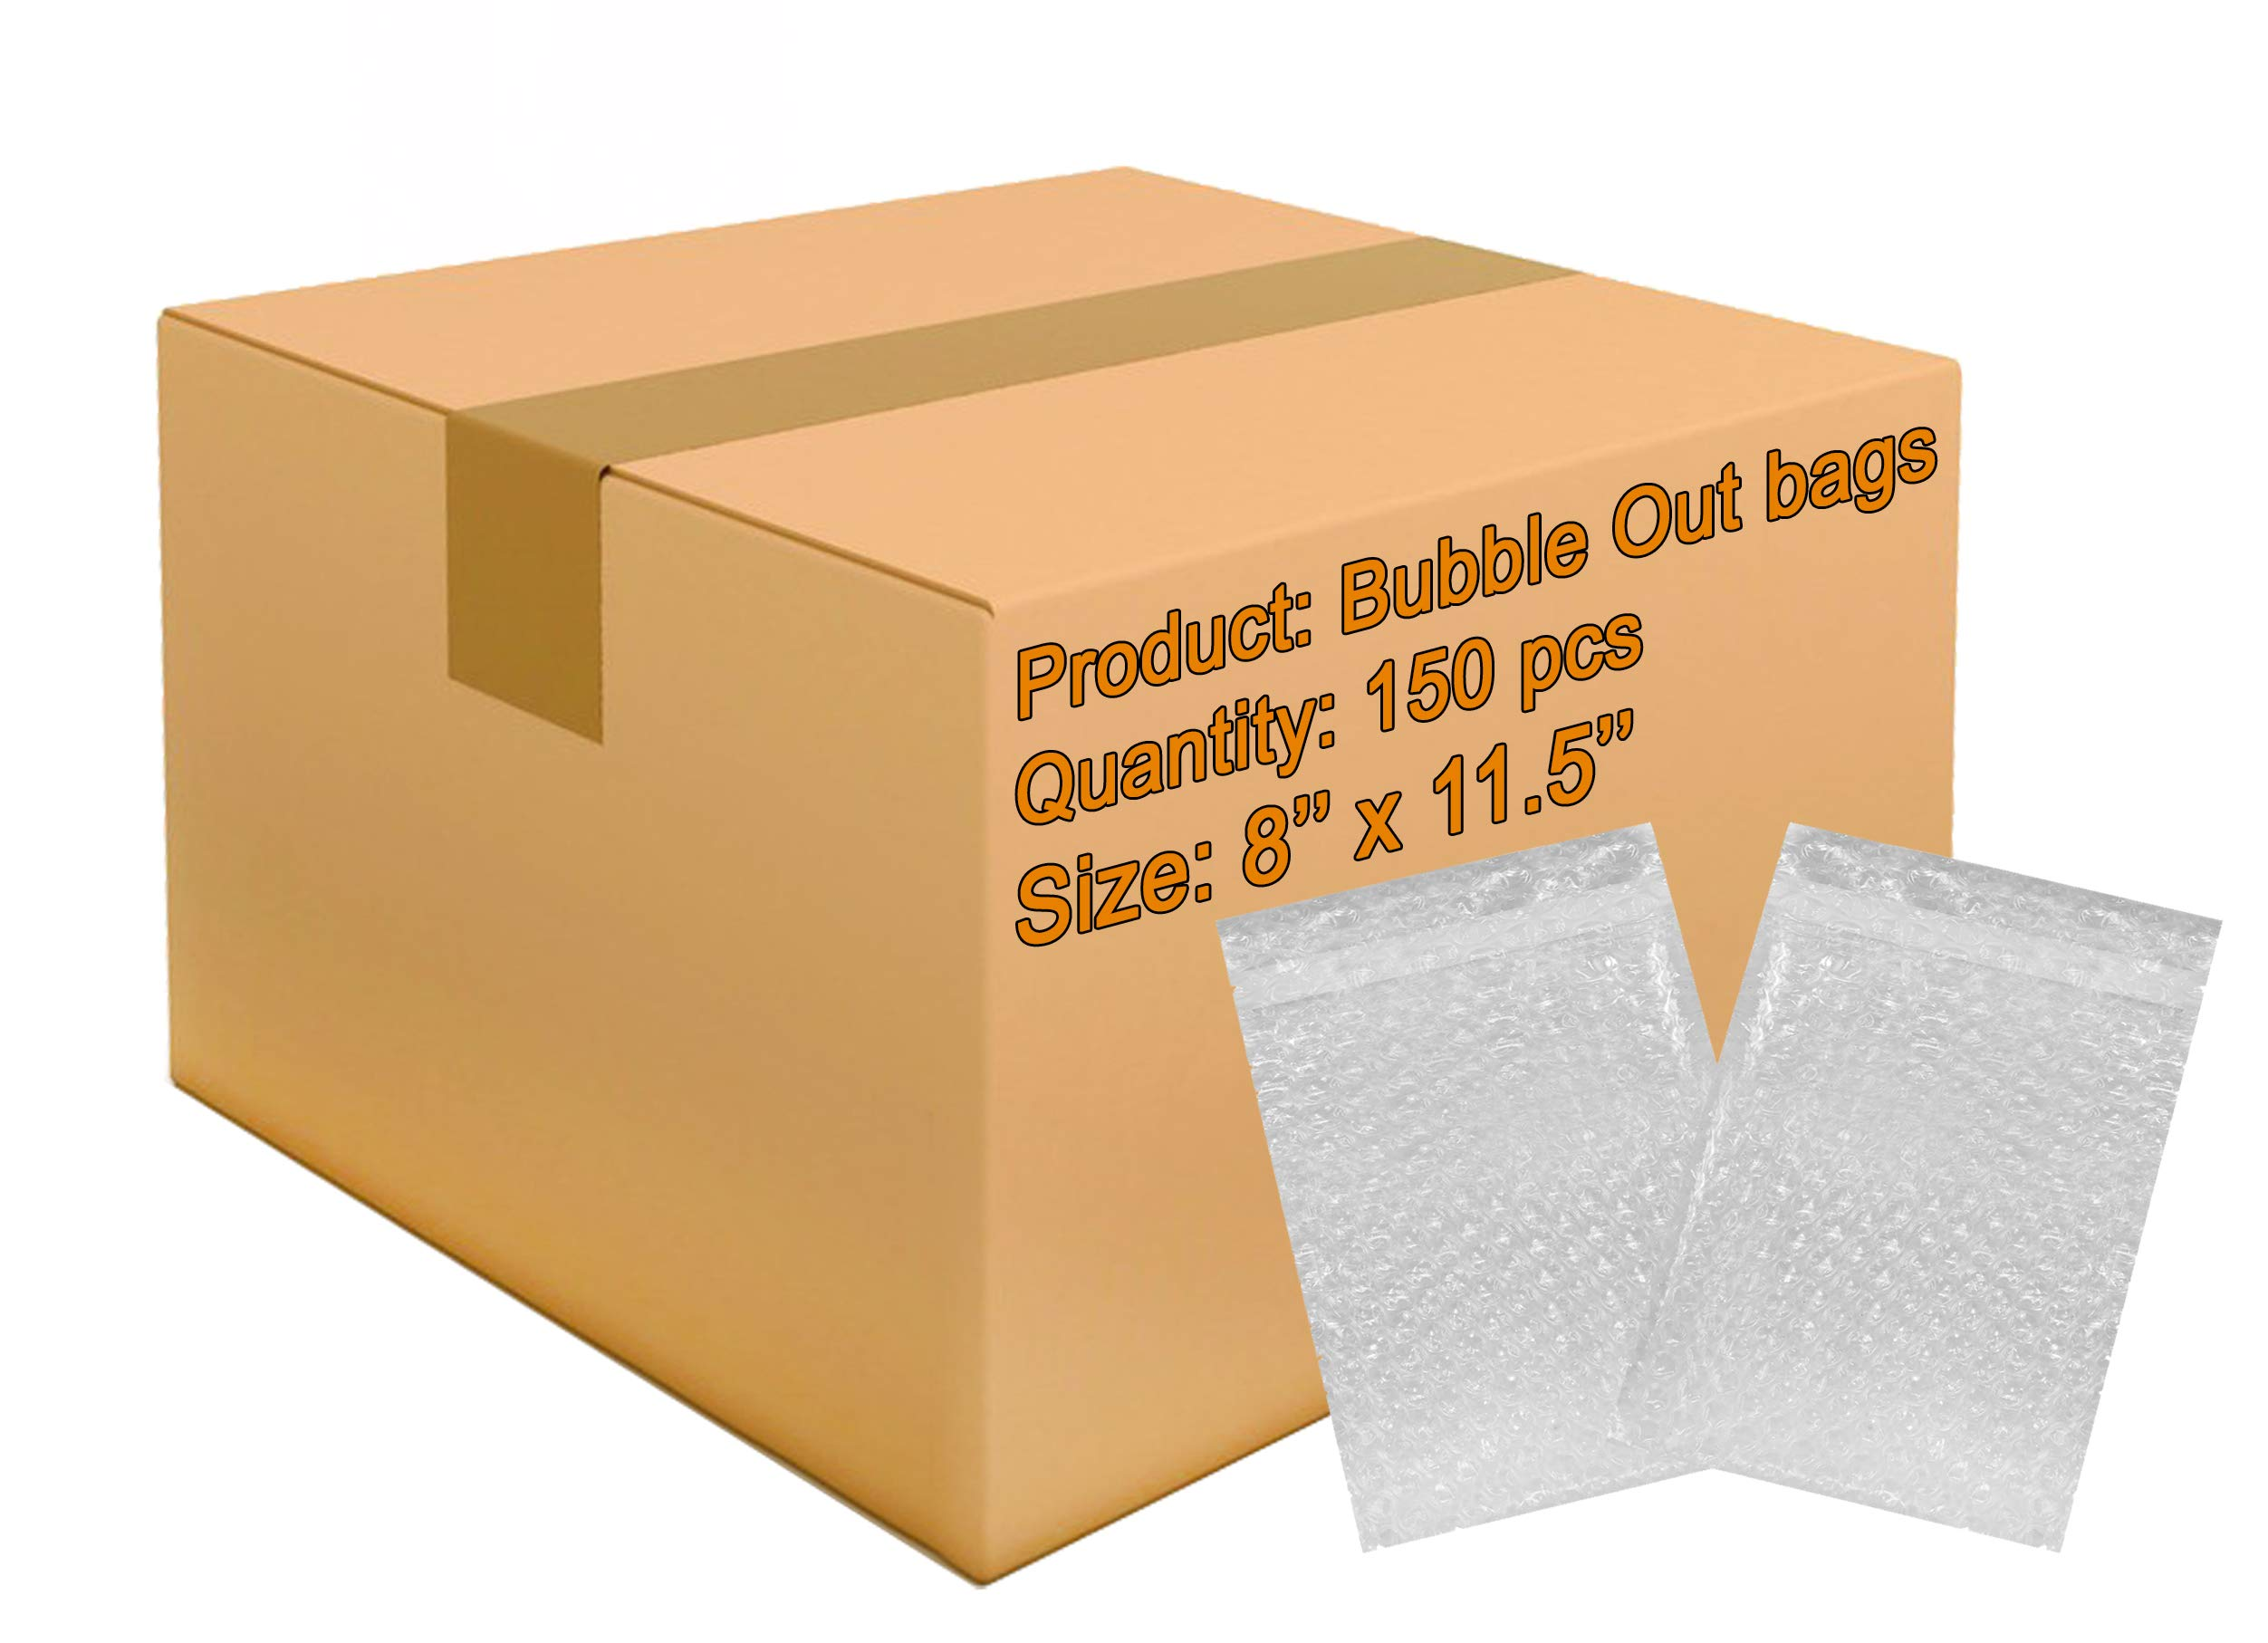 150 Pack of Bubble Out Bags 8 x 11.5. Self-Sealing Packing Moving Bags Pouches 8 x 11 1/2 Cushion Lightweight Bags for mailing and Packaging. Wholesale Price.